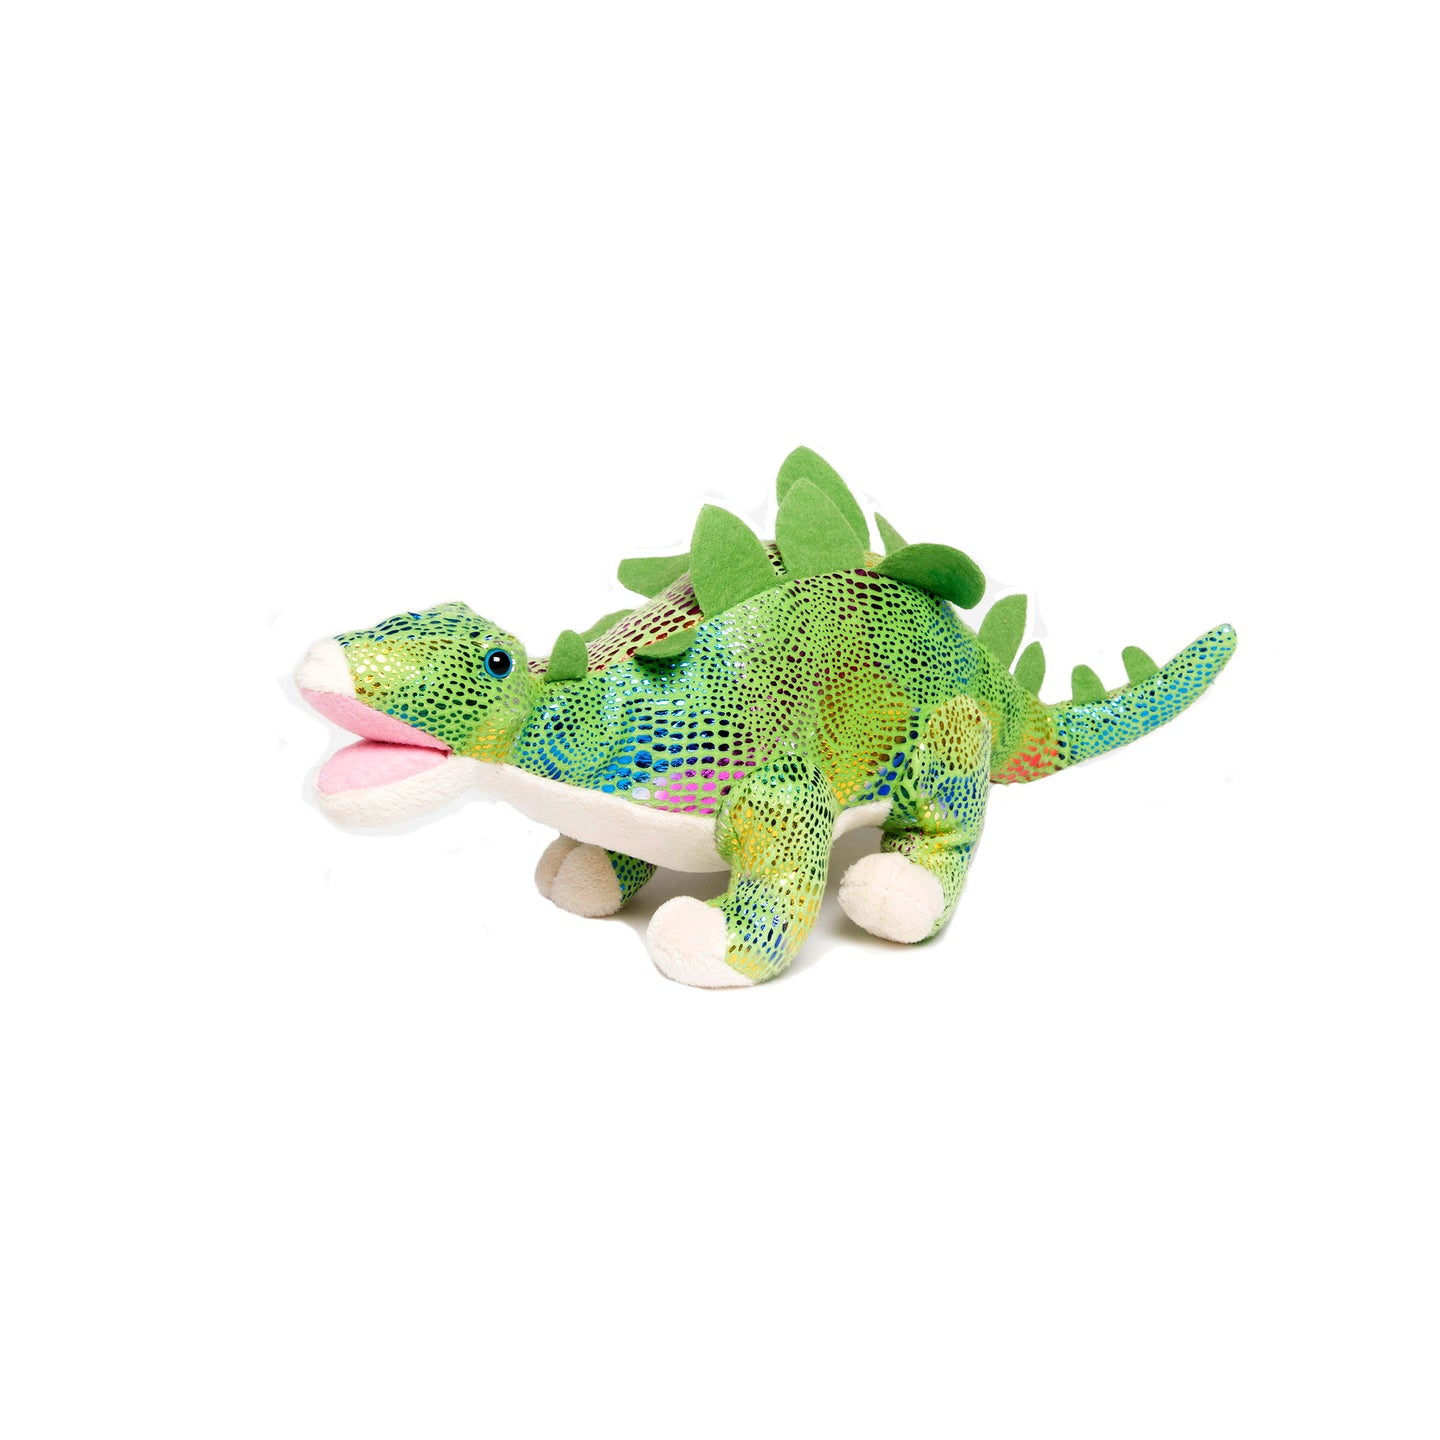 Sparkle Stegosaurus Stuffed Animal